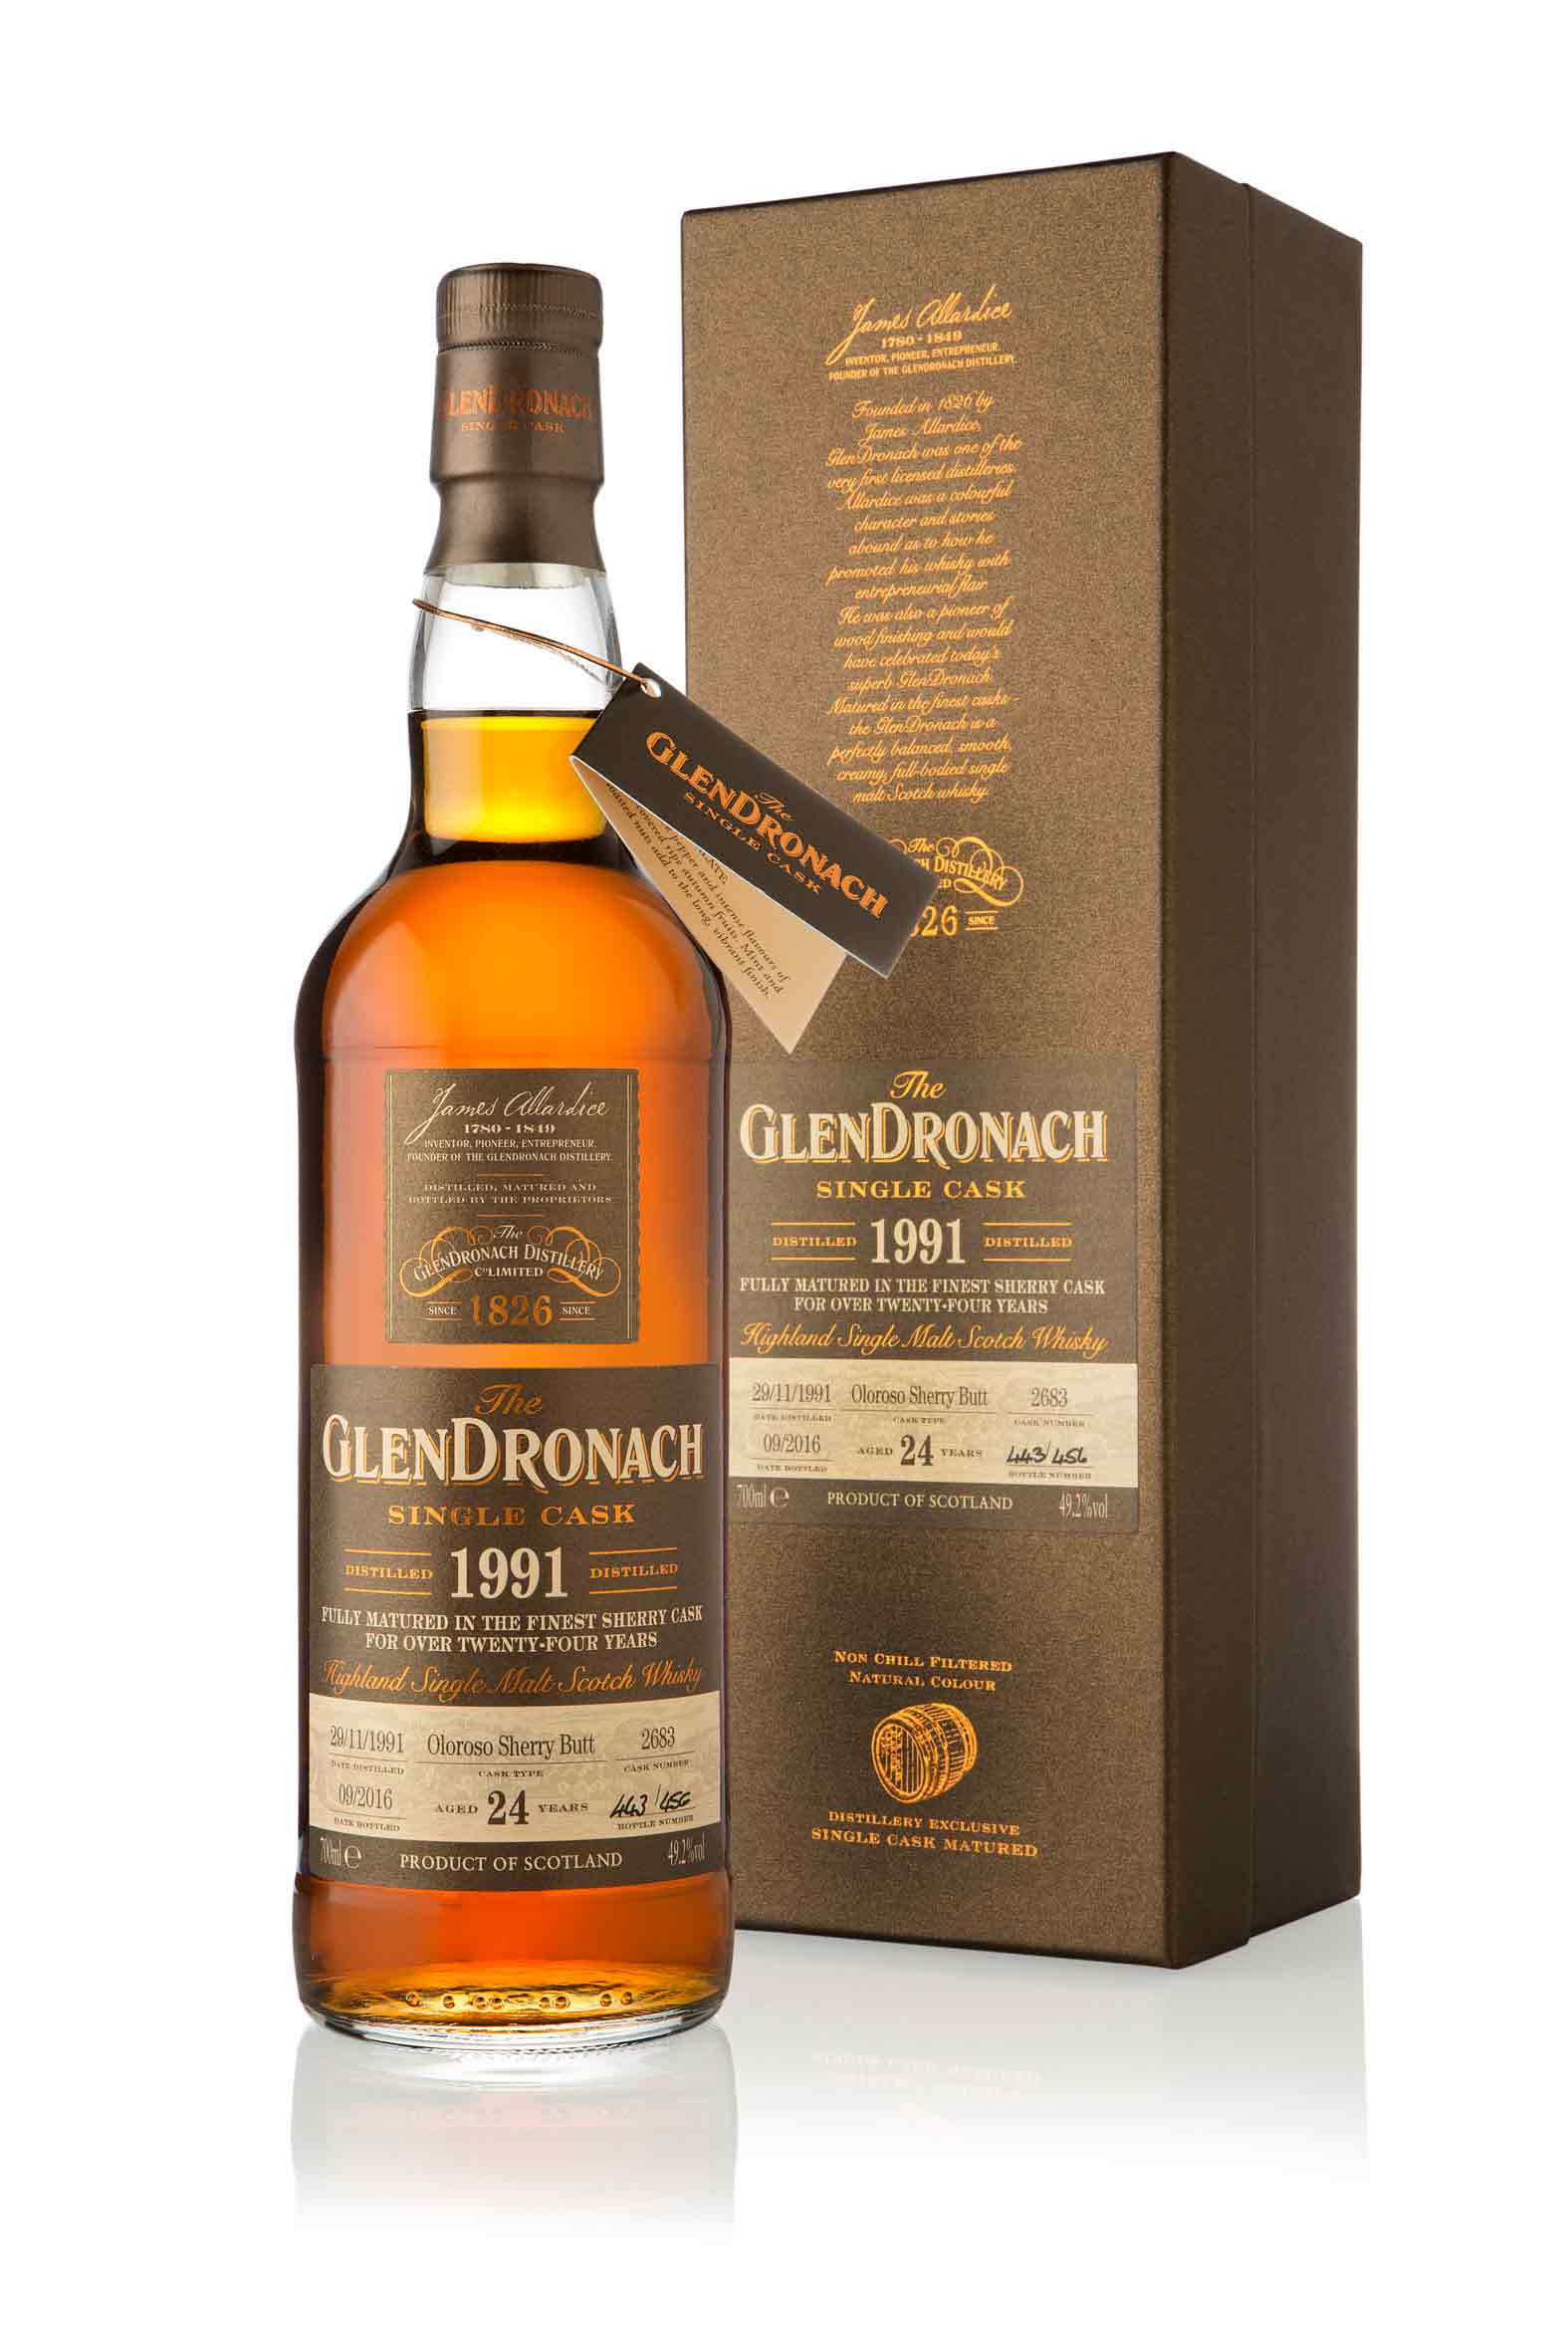 GlenDronach 24 Year Old - 1991 / Single Cask 2683 / Batch 14